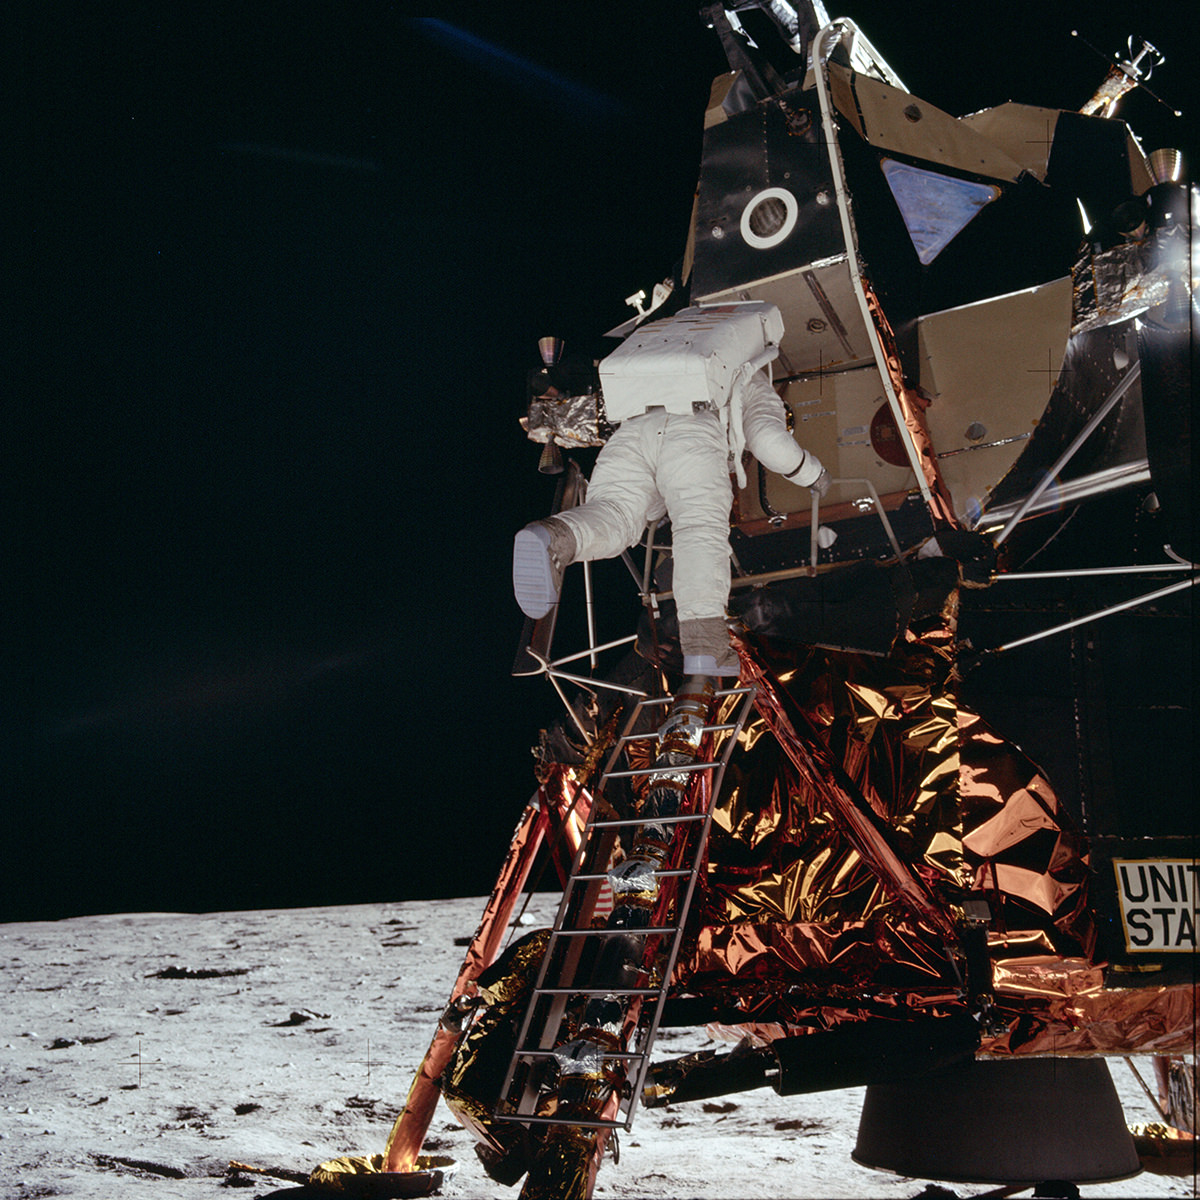 An astronaut descending from the lunar lander on the moon.